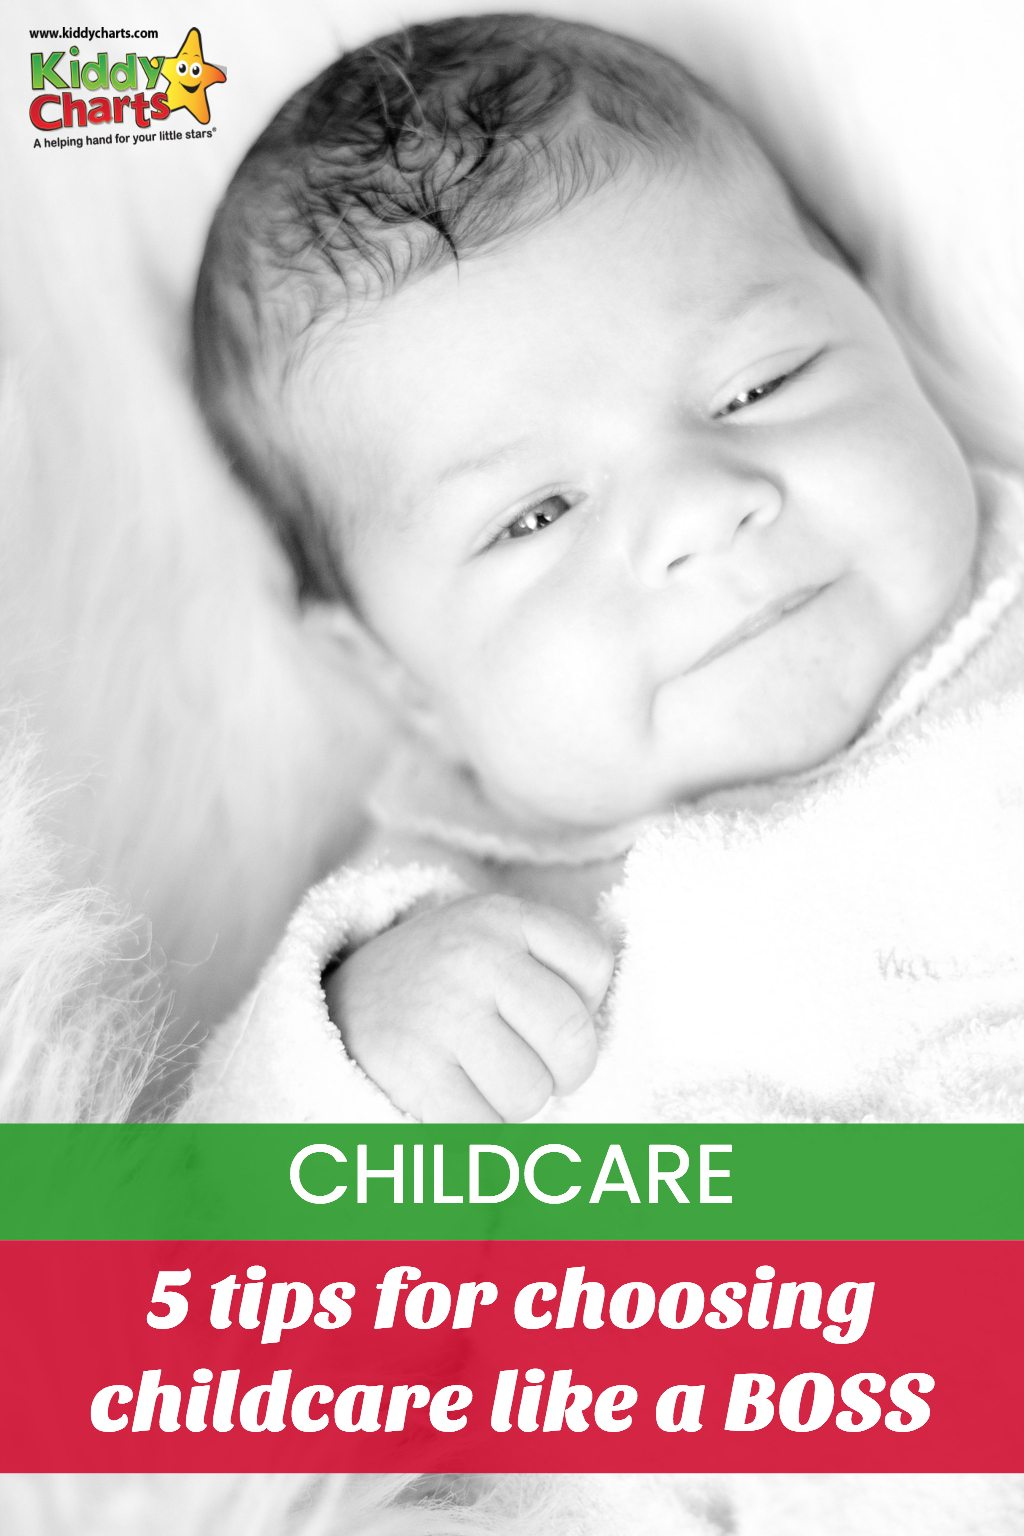 Are you choosing childcare - if you are then we have some amazing tips for you to make it oh so much easier!